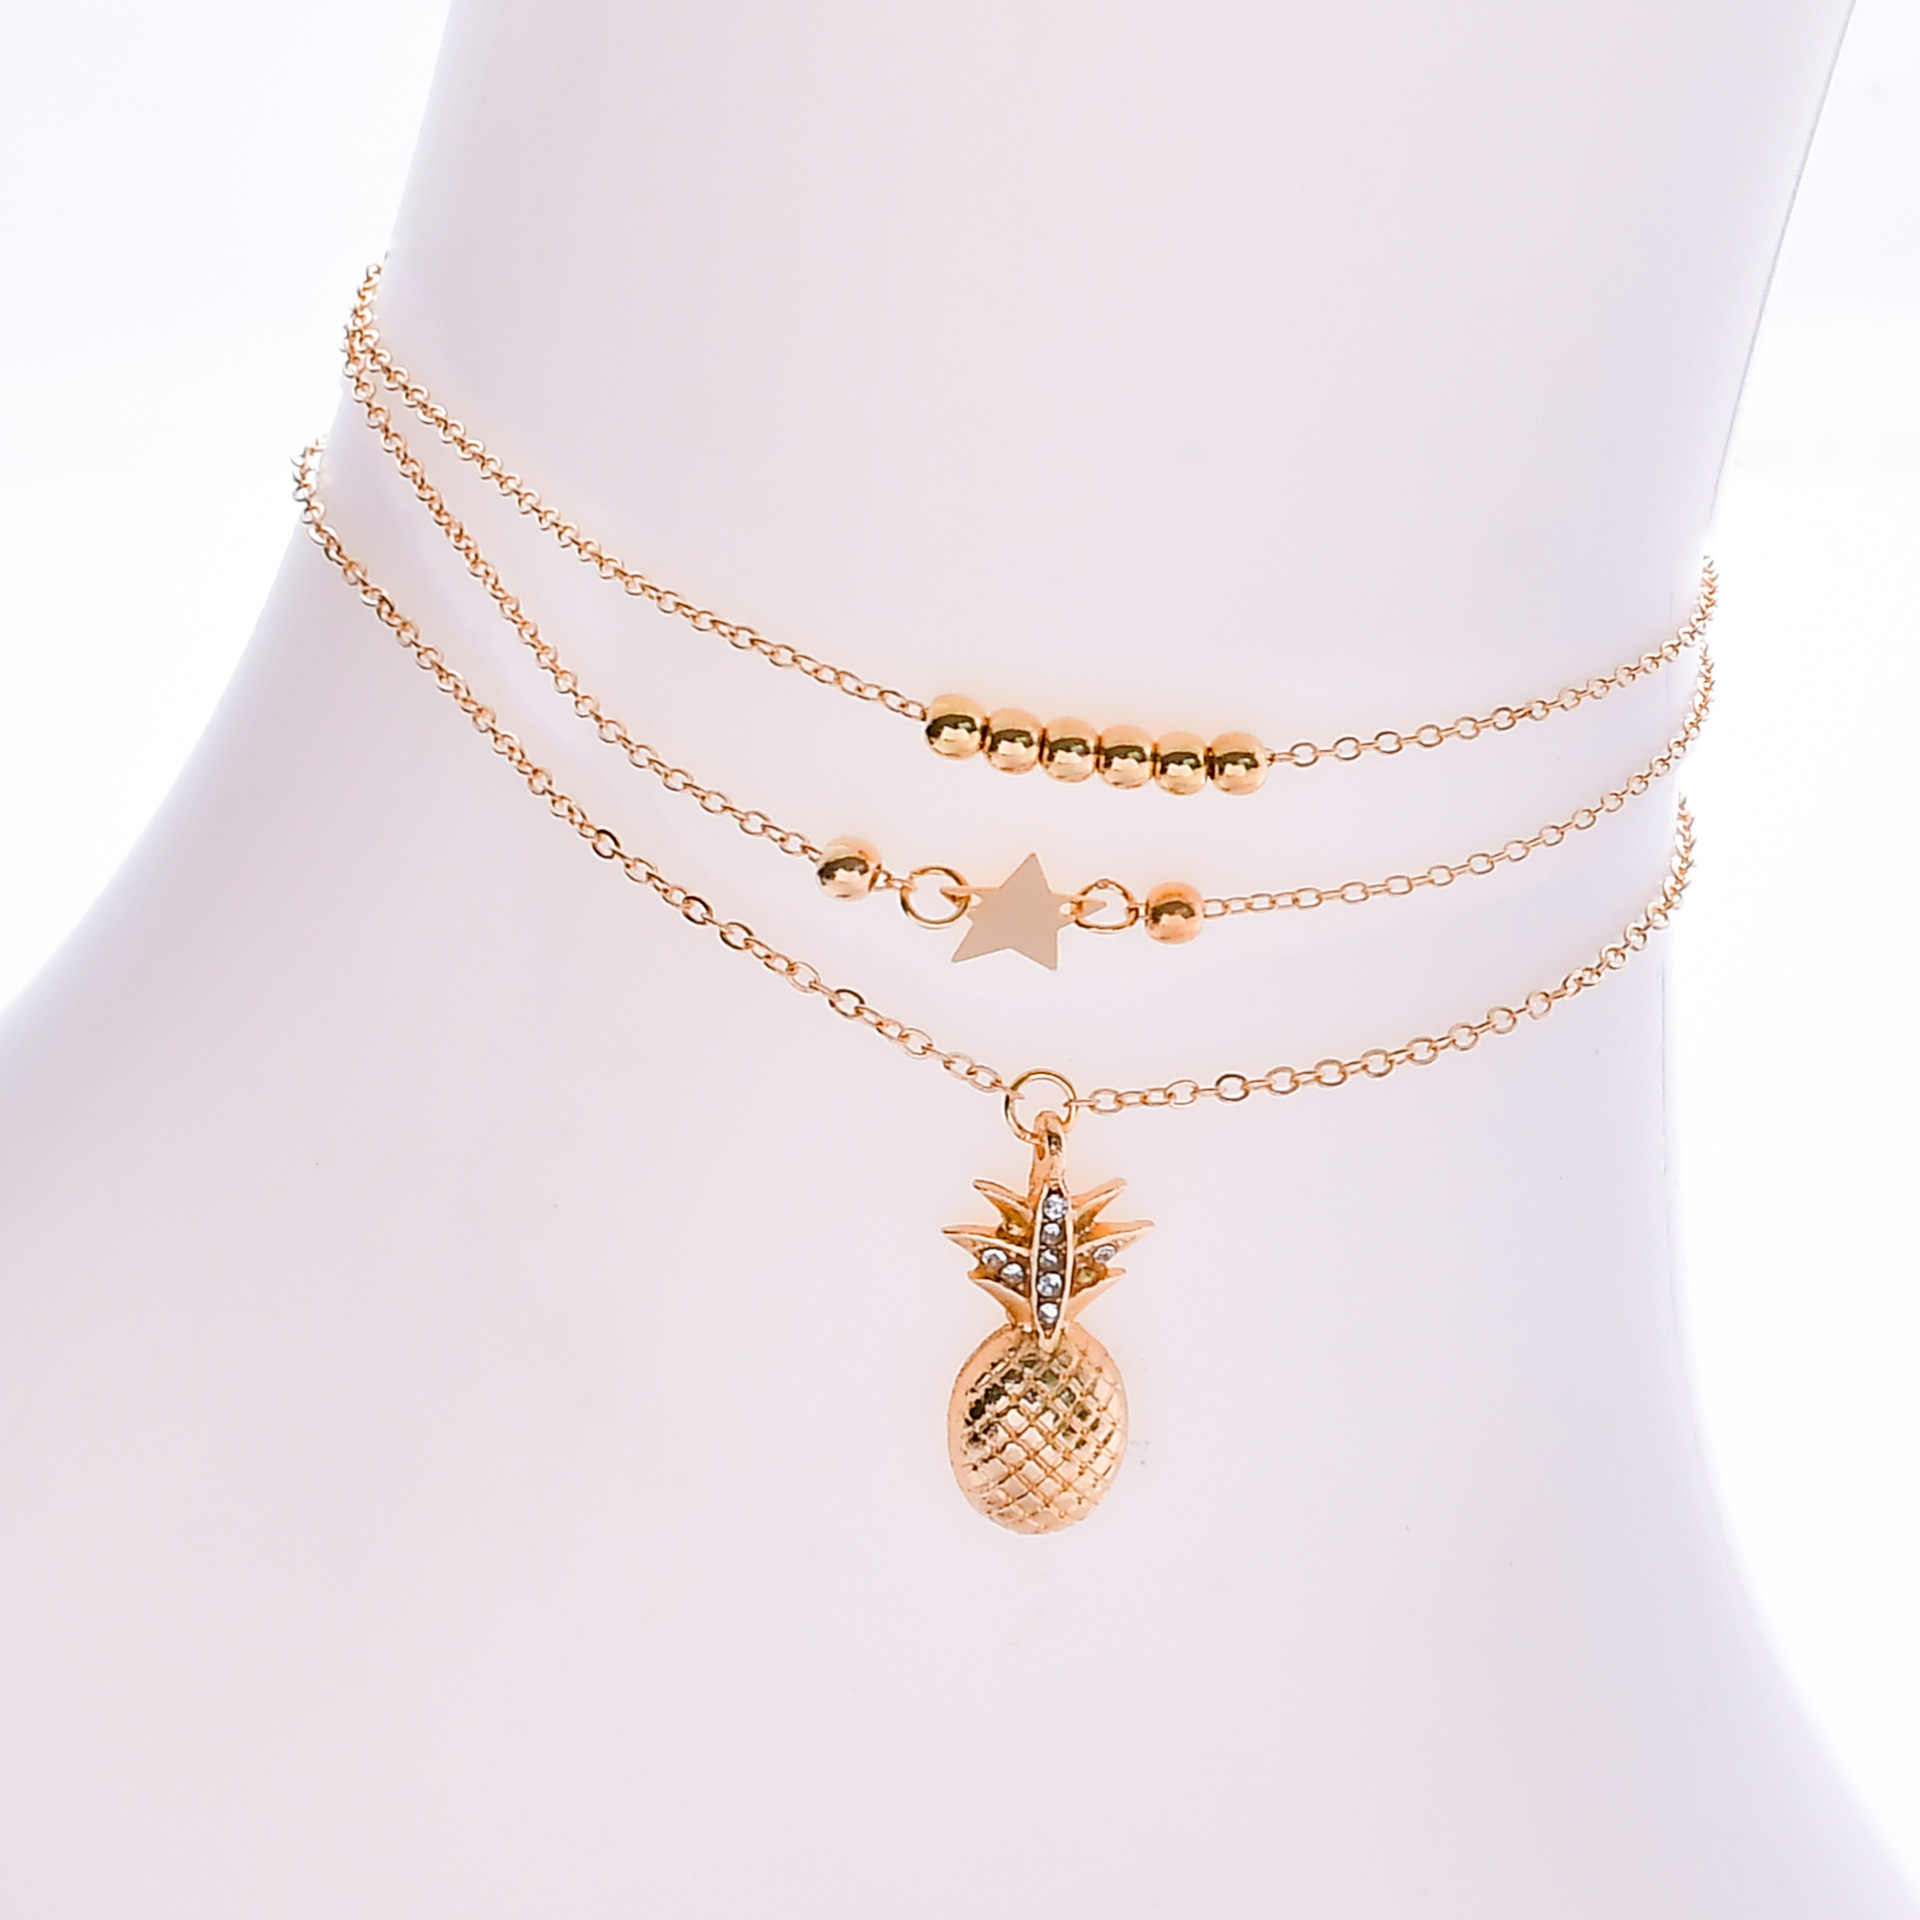 Fashion Summer Beach Multi-layered Five-pointed Star Beaded Pineapple Anklet Charms Leg Bracelets for Women Jewelry Accessories